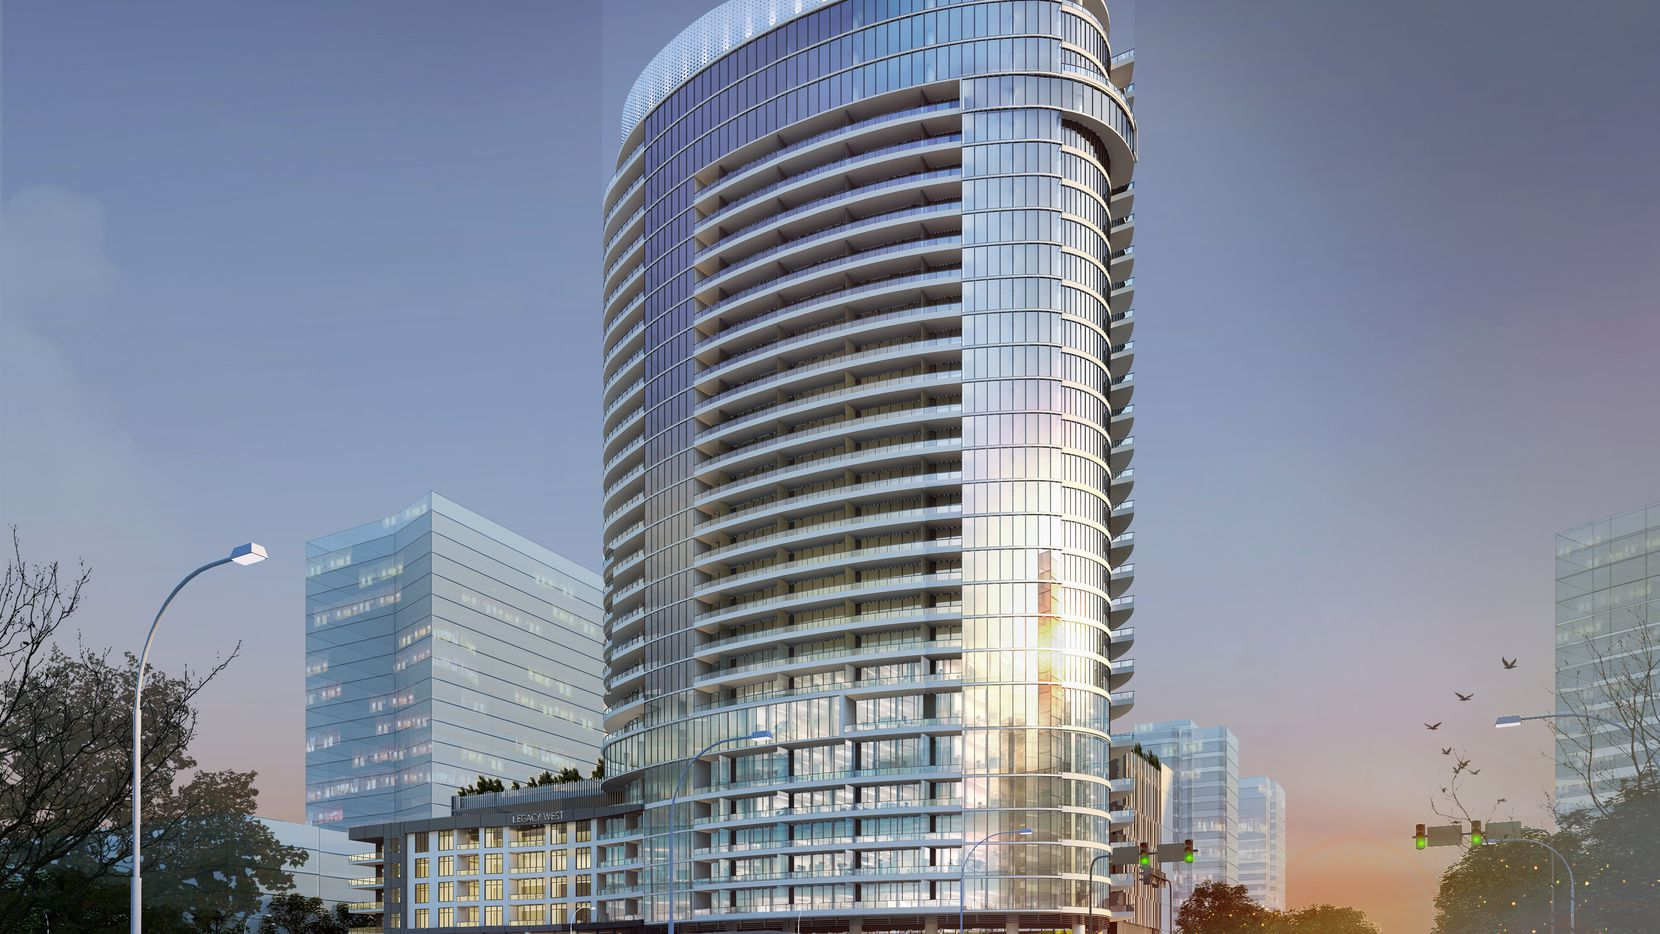 The LVL 29 tower will be the tallest building in Plano's $3 billion Legacy West development. (Humphreys & Partners)